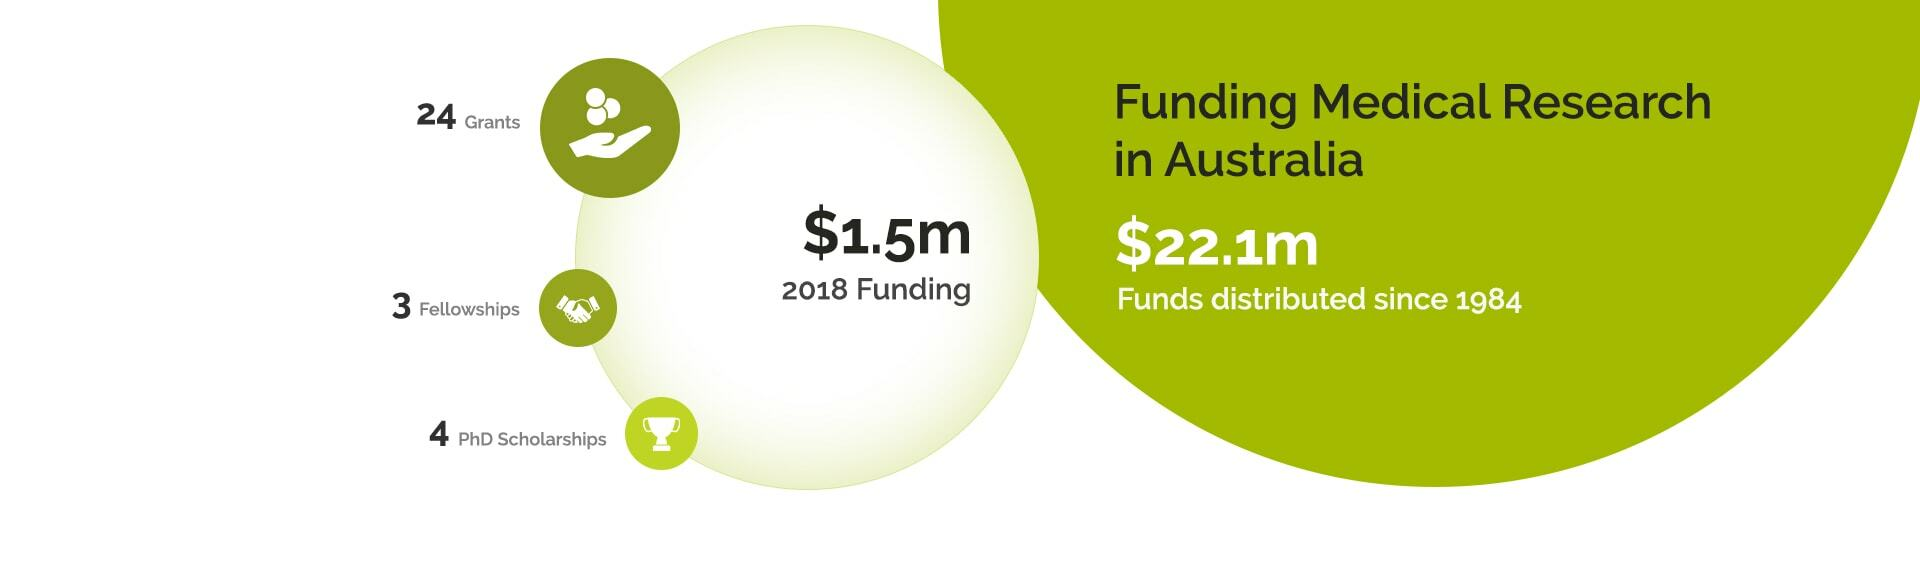 Funding Medical Research in Australia